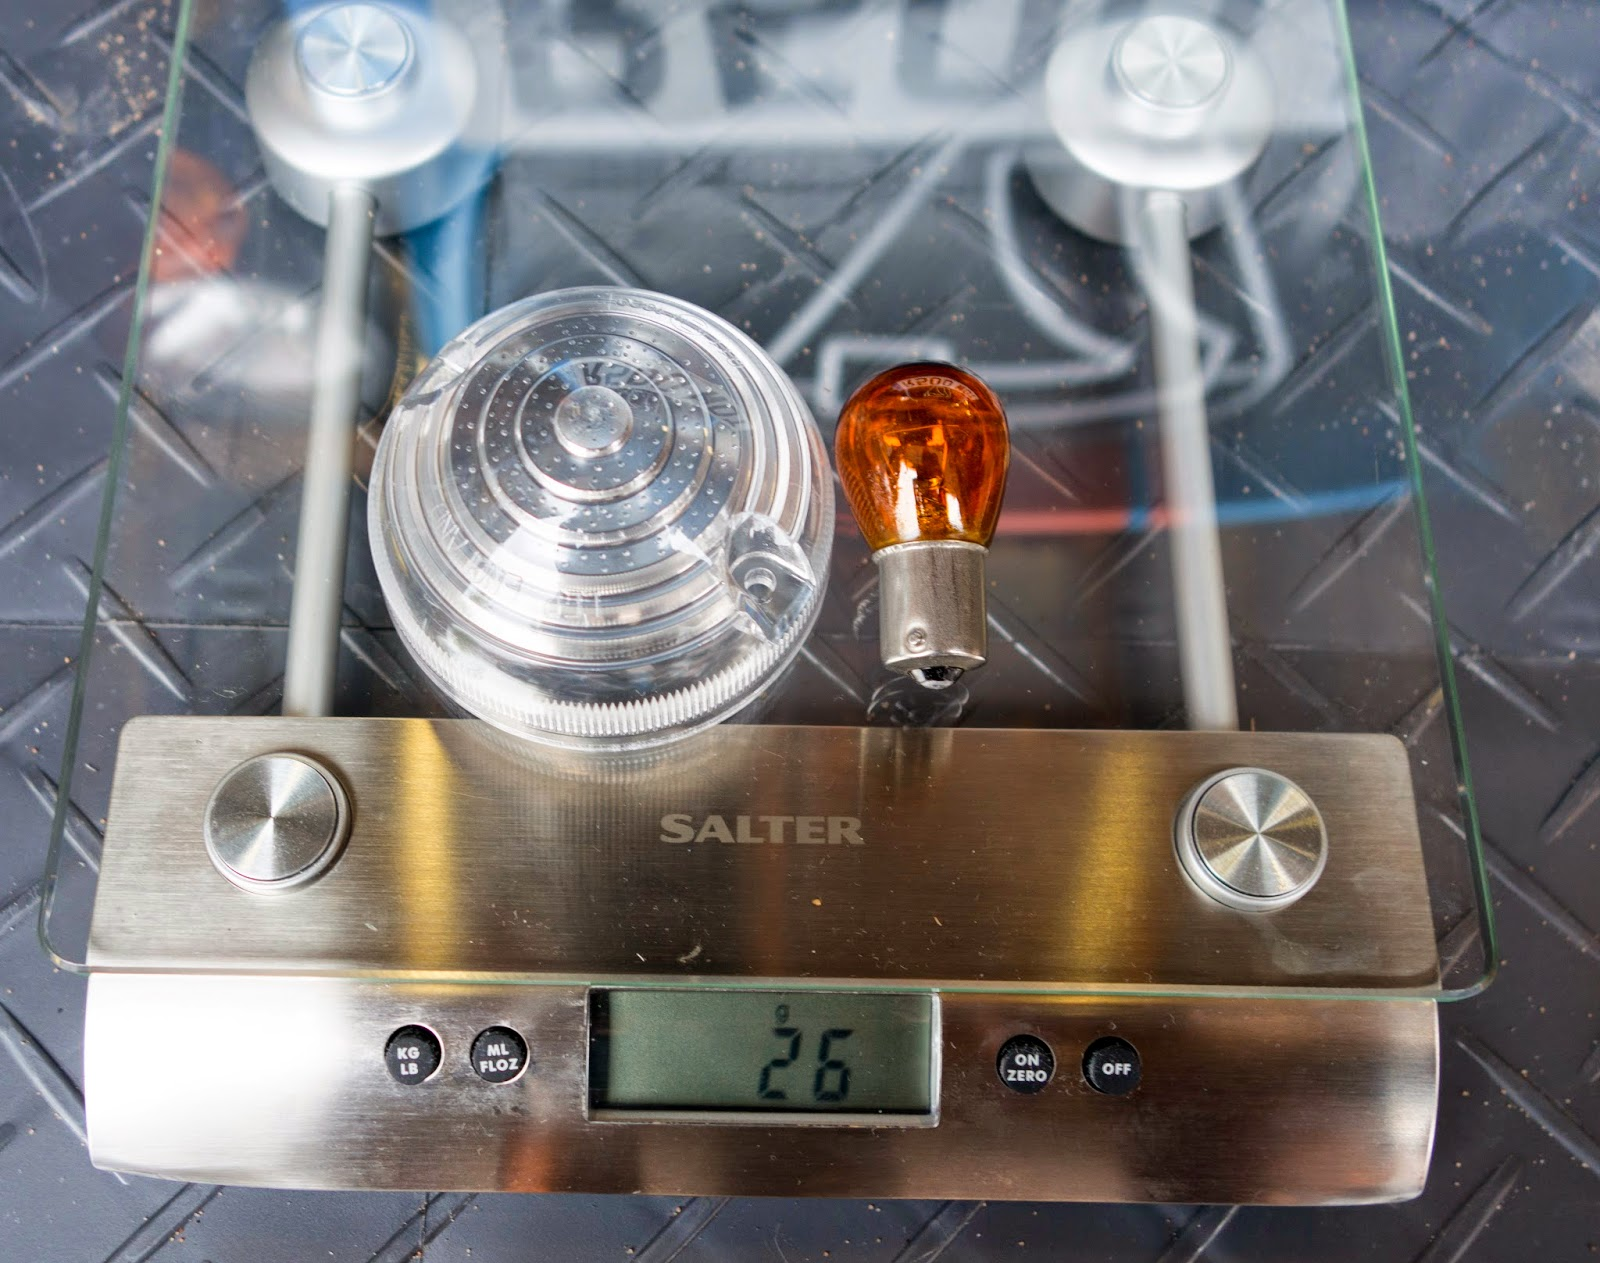 Caterham Clear Front Indicator Kit - Surprisingly lighter than the standard part at 26g.